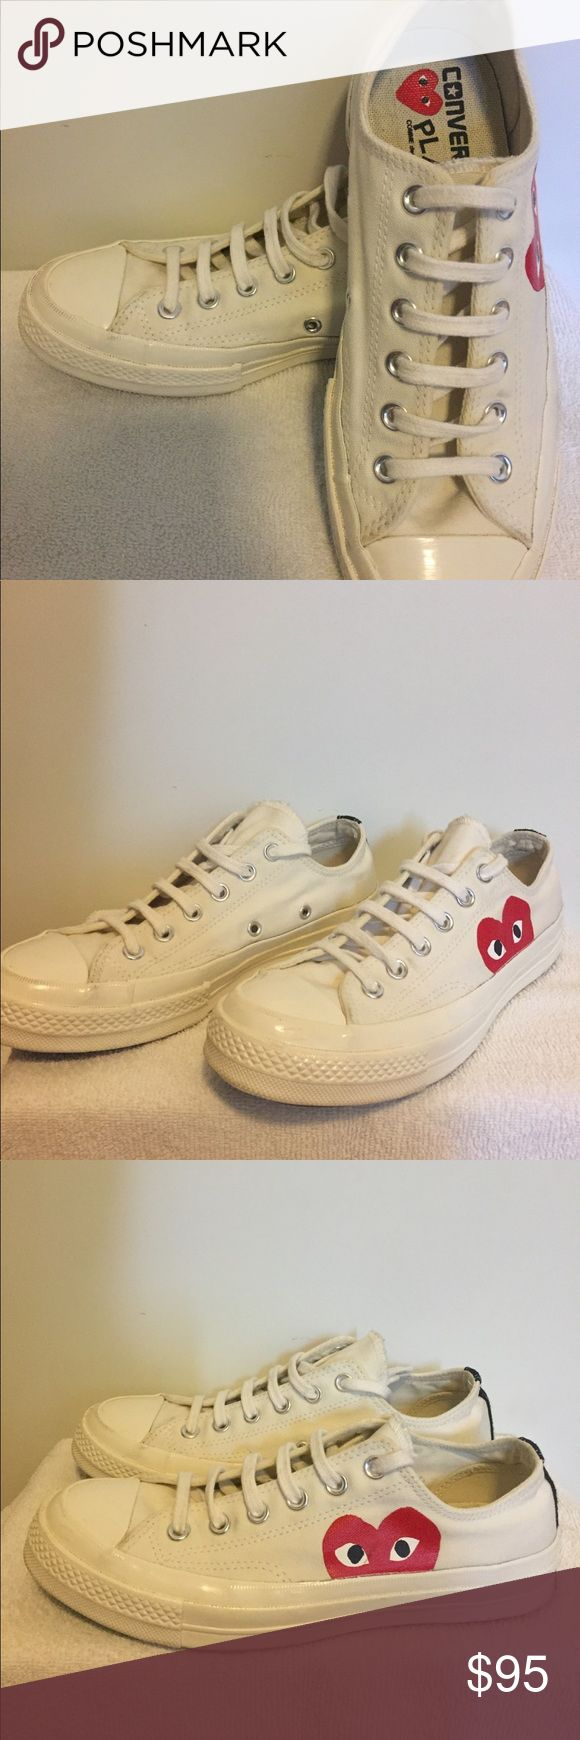 COMME DES GARCONS X CONVERSE CHUCK TAYLOR COMME DES GARÇONS PLAY  X CONVERSE CHUCK TAYLOR.  Cool sneakers.  SZ 6  Mens. SZ 8 Women's.  In great conditions.  No Box. Take a good look at the pictures. If you have any questions feel free to message me.  Thanks in advance.  ALL SALES ARE FINAL Comme des Garcons Shoes Sneakers